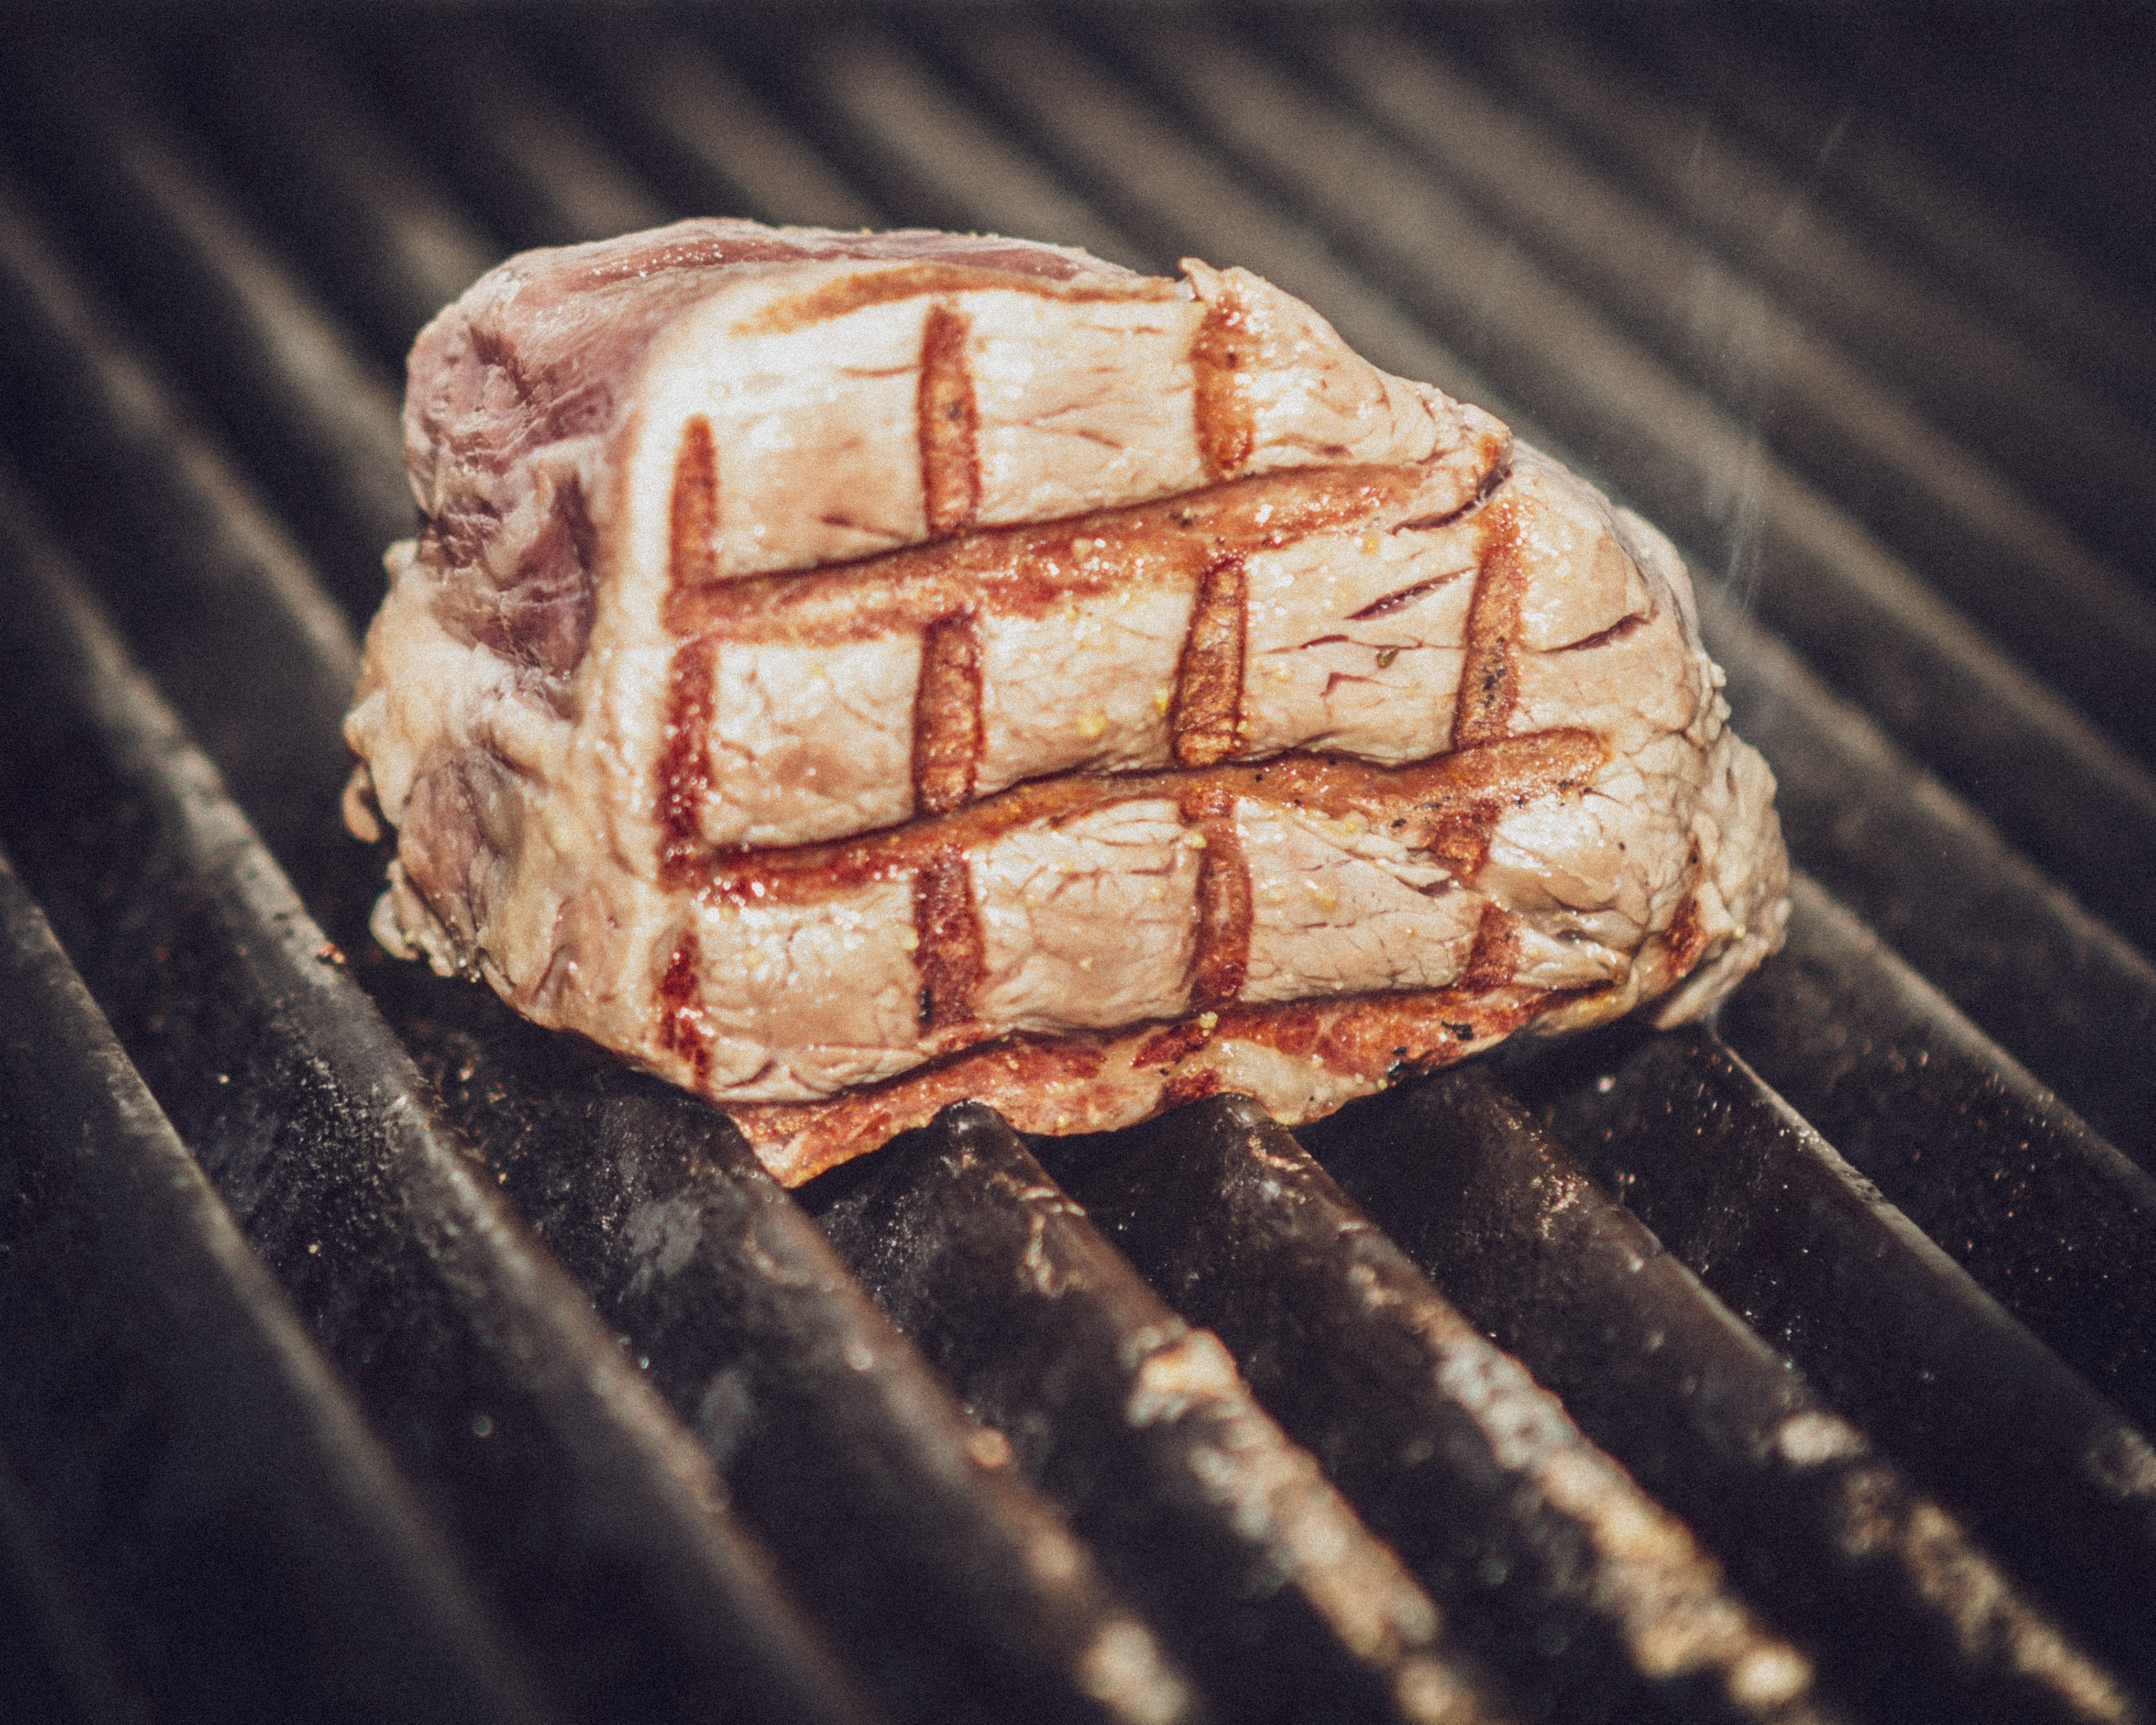 FILET AT THE GRILL